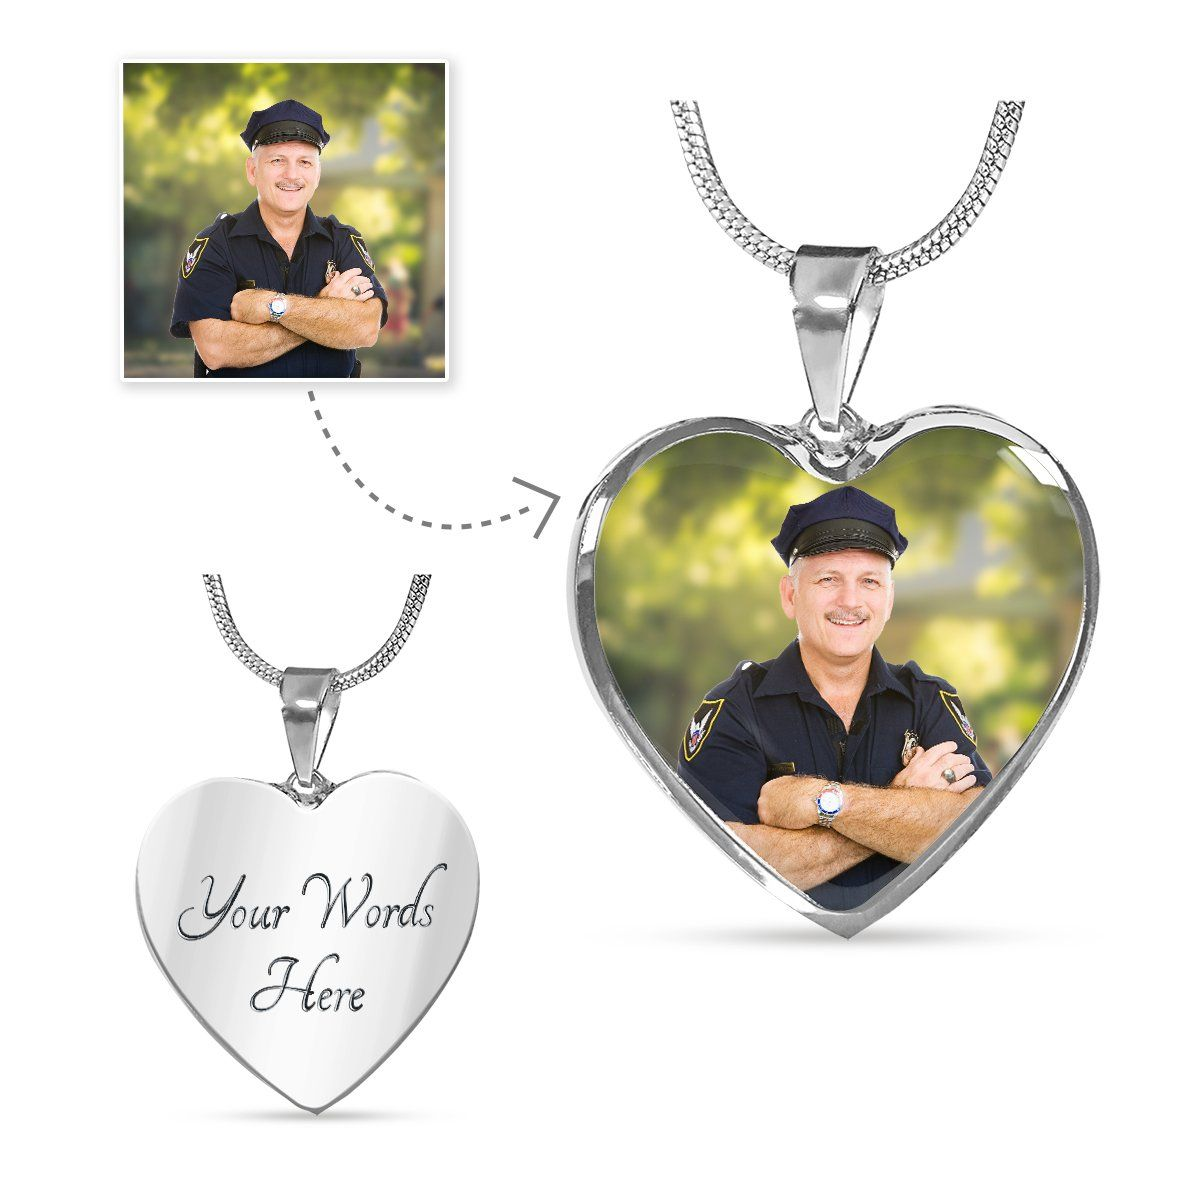 Law Enforcement Personalized Photo Heart Necklace - Heroic Defender